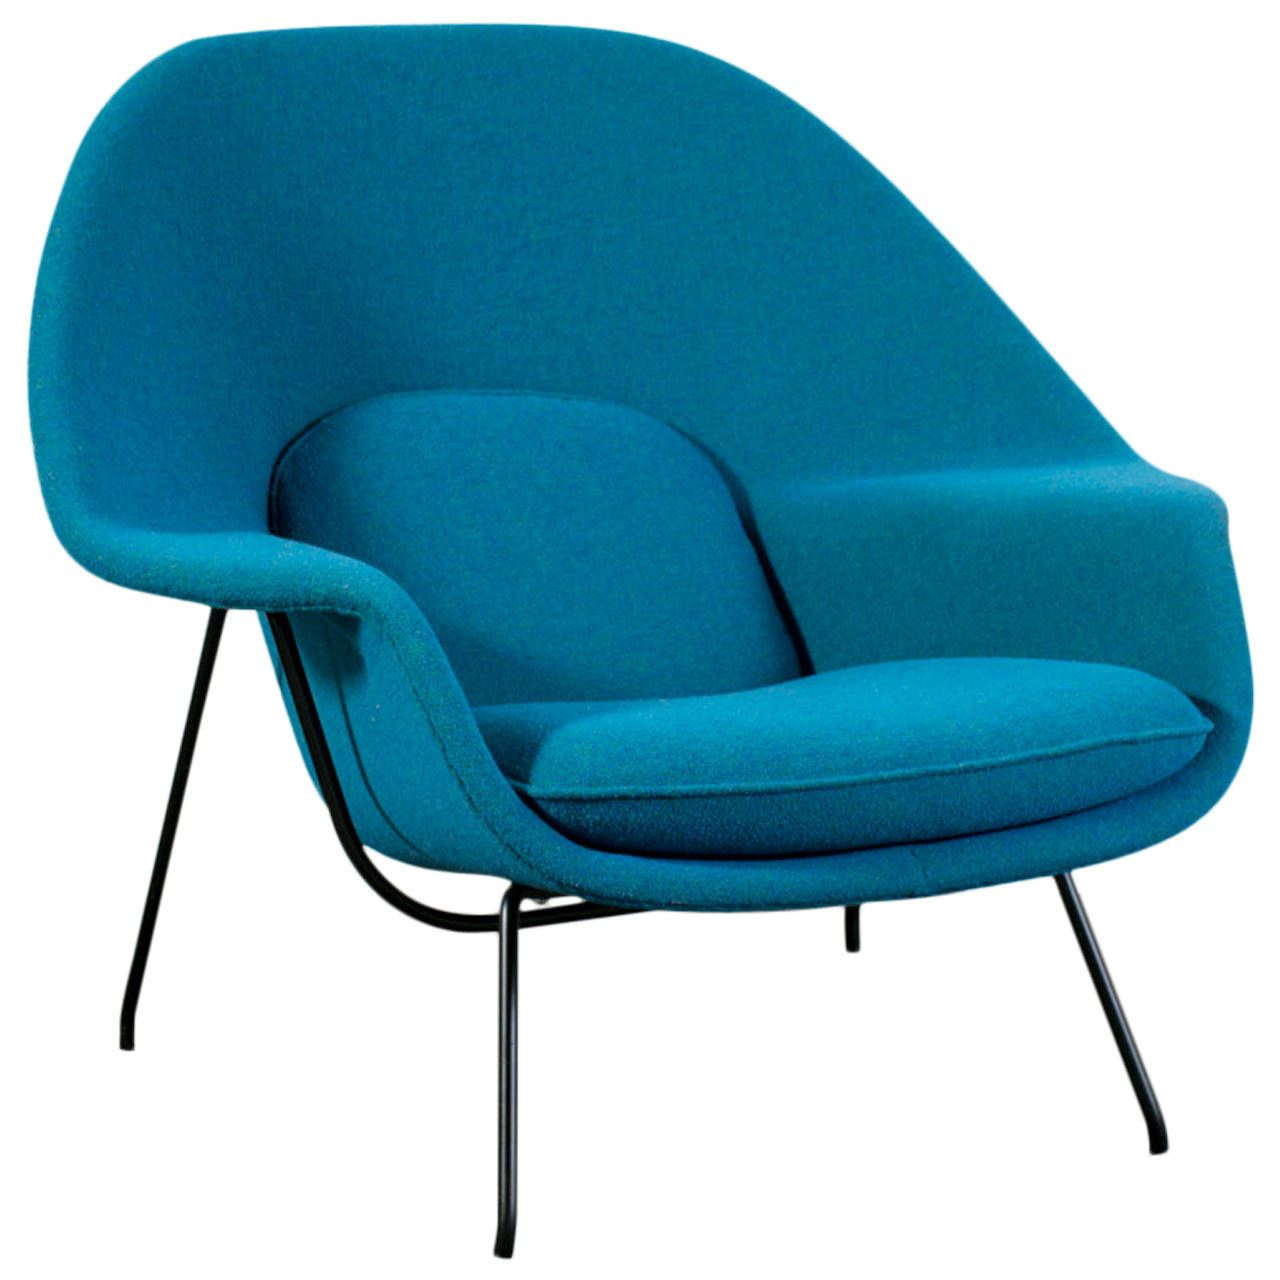 View This Item And Discover Similar Lounge Chairs For Sale At   This  Vintage Mid Century Lounge Chair Was Designed By Eero Saarinen For Knoll In  The Maharam ...